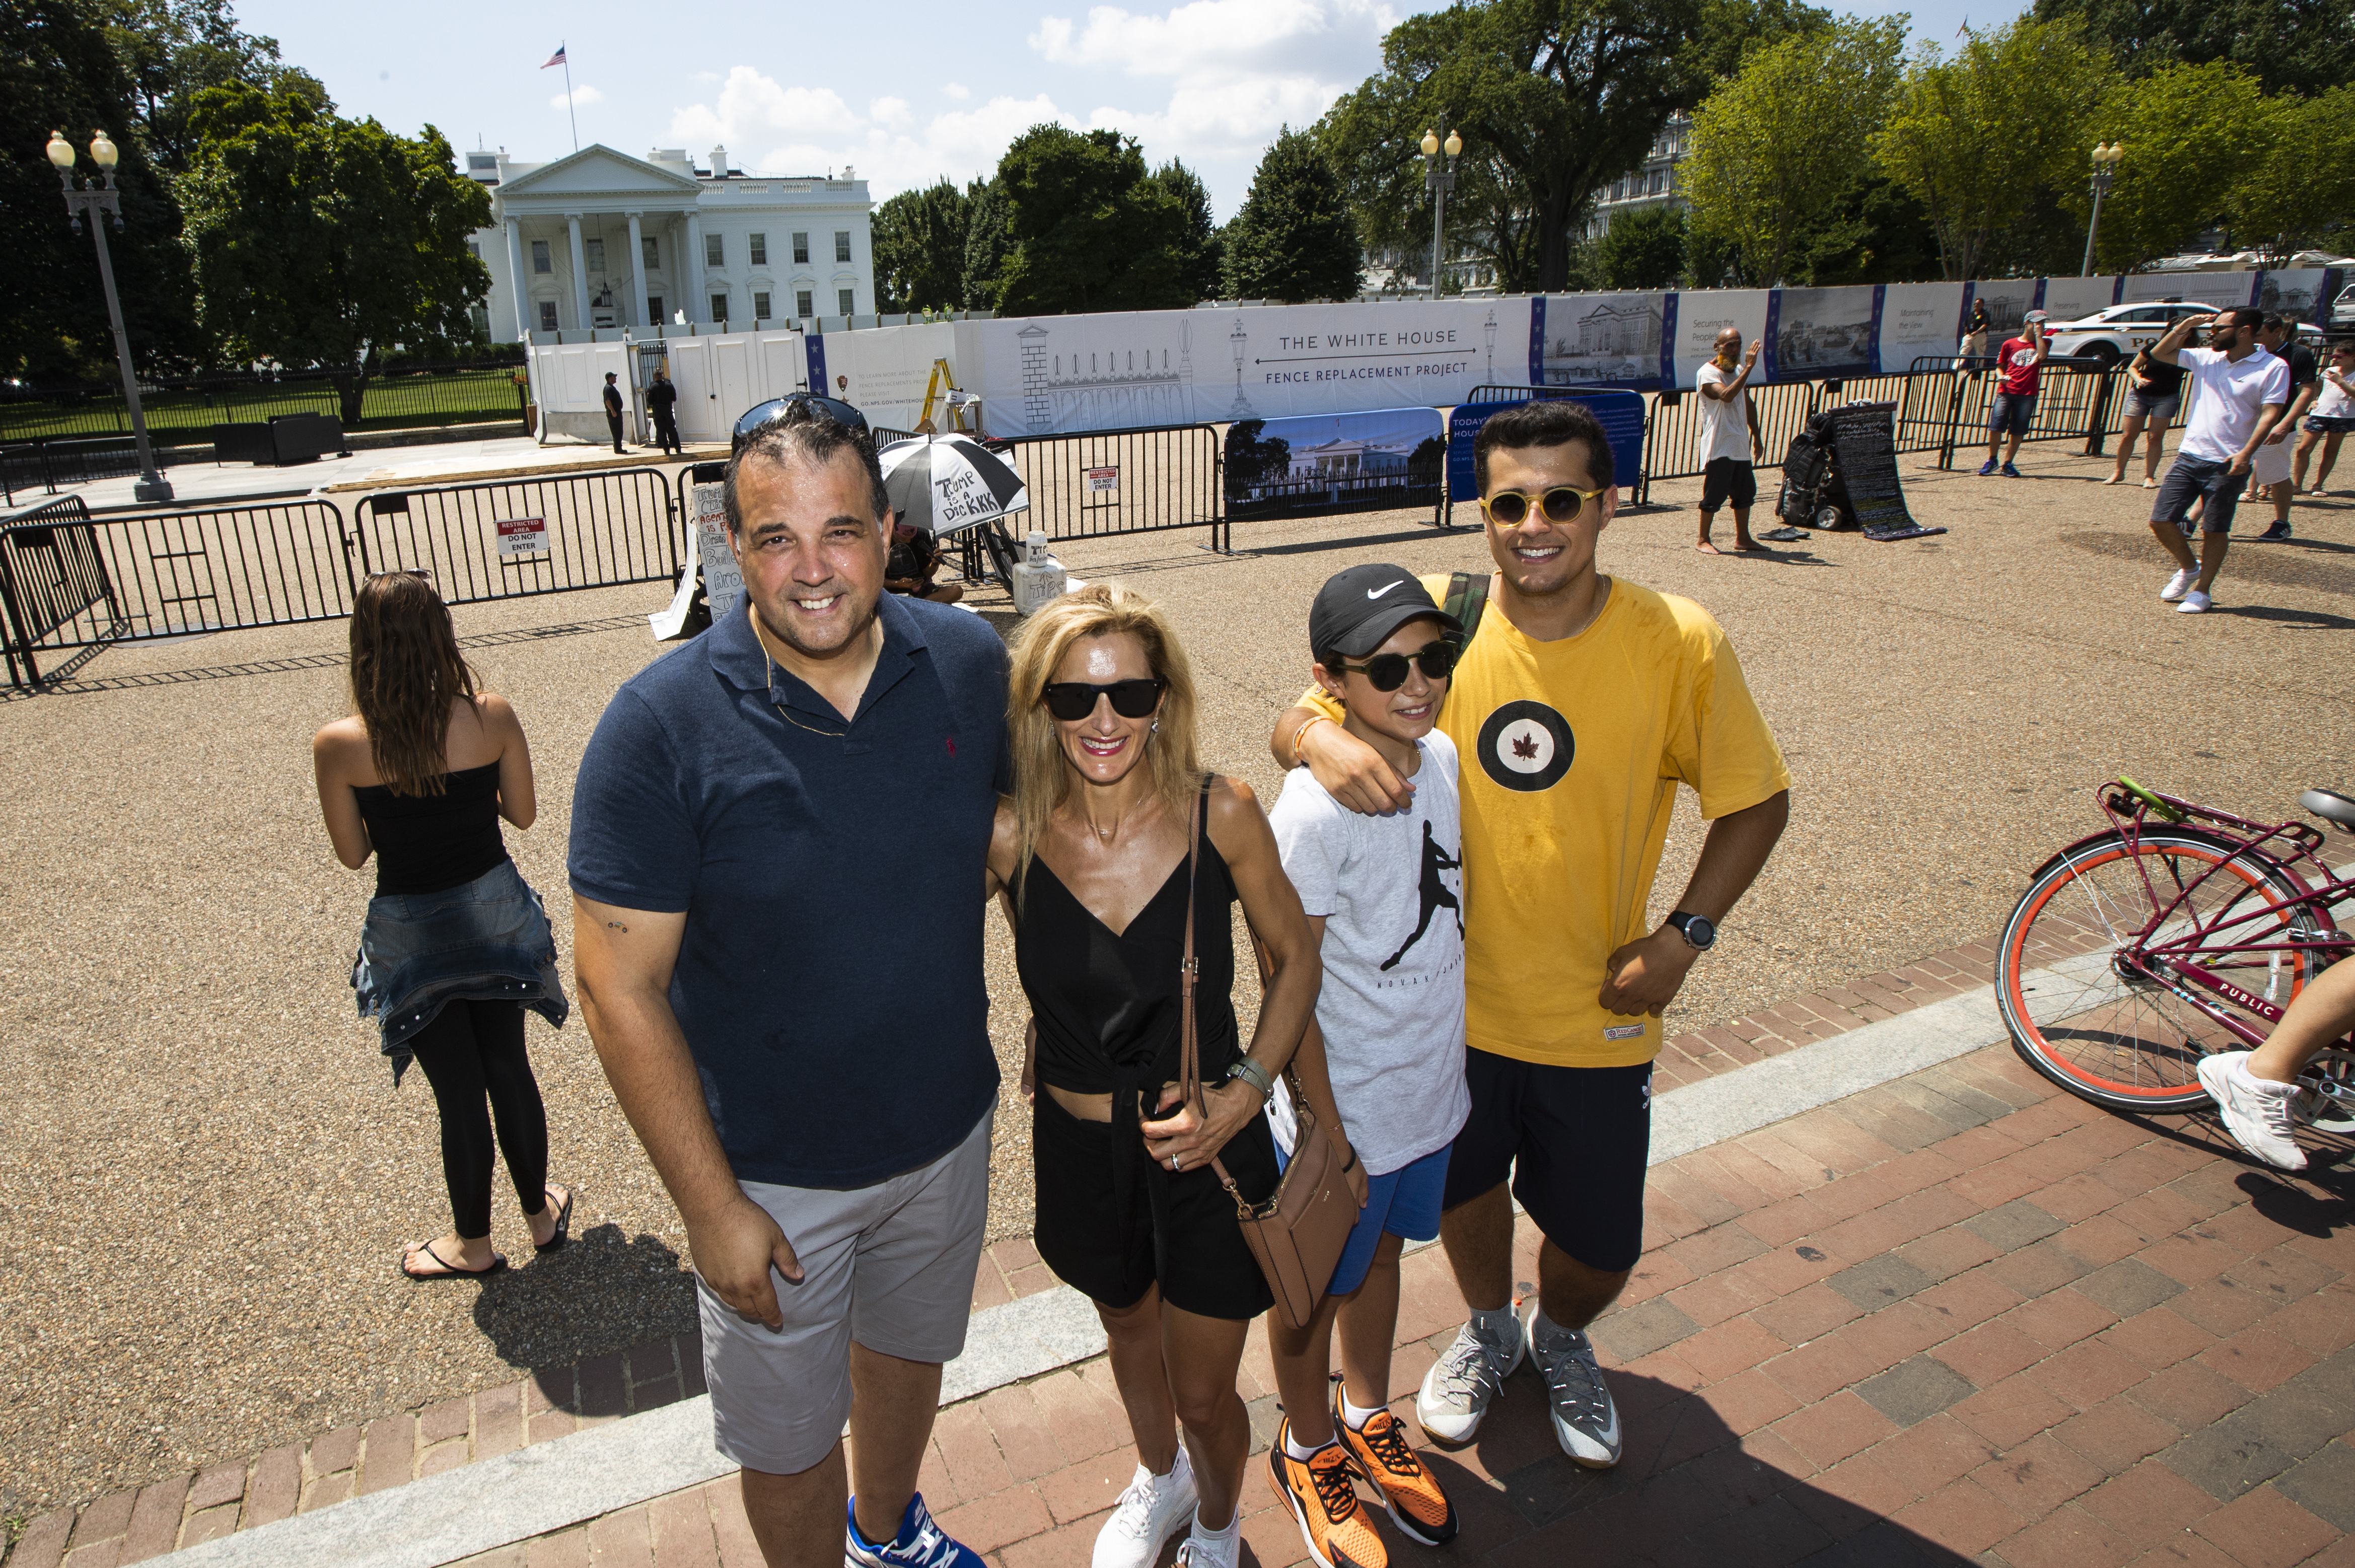 White House fence project obscures tourists view